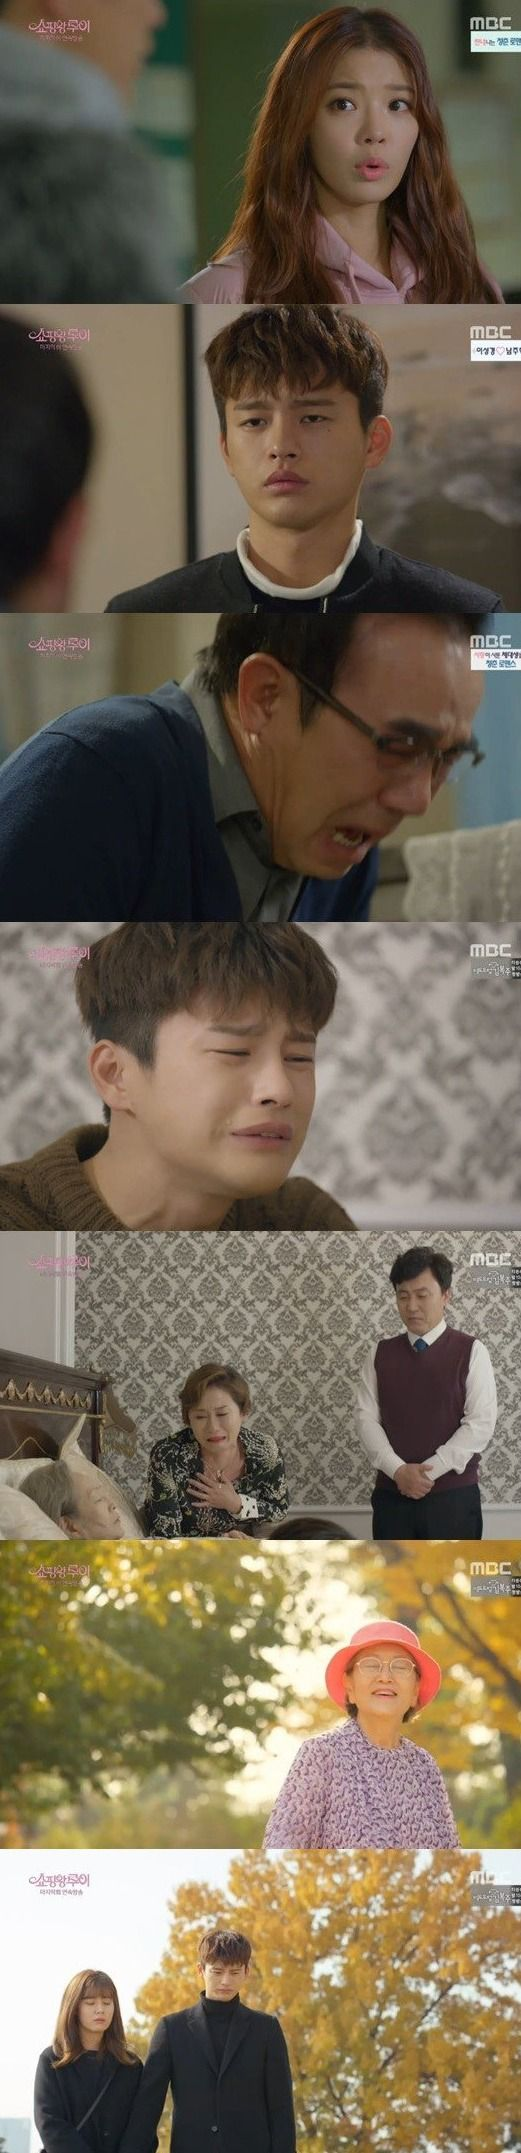 [Spoiler] Added final episodes 15 and 16 captures for the #kdrama 'Shopping King Louis'